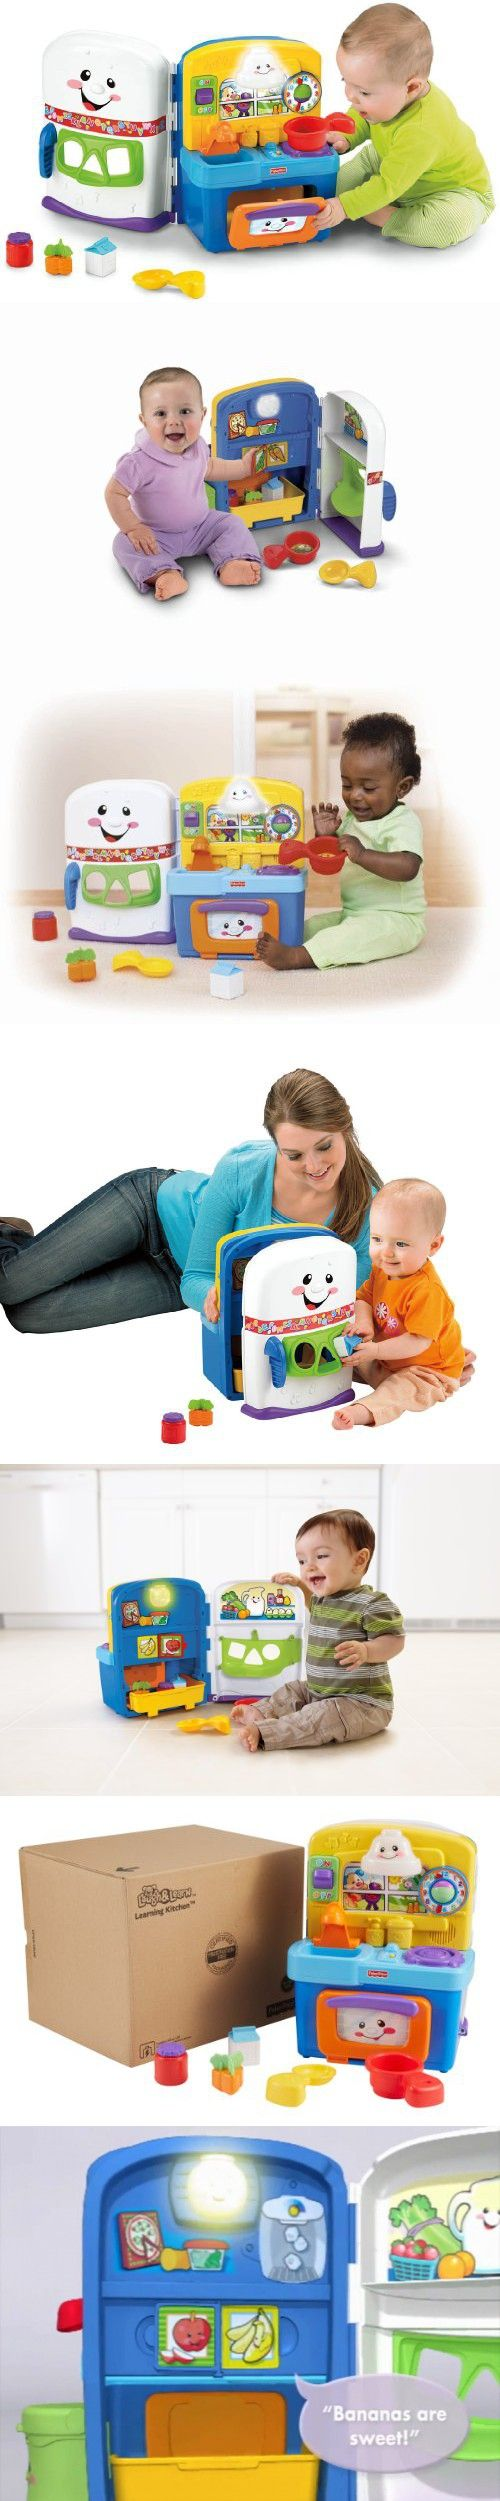 FisherPrice Laugh & Learn Learning Kitchen Activity